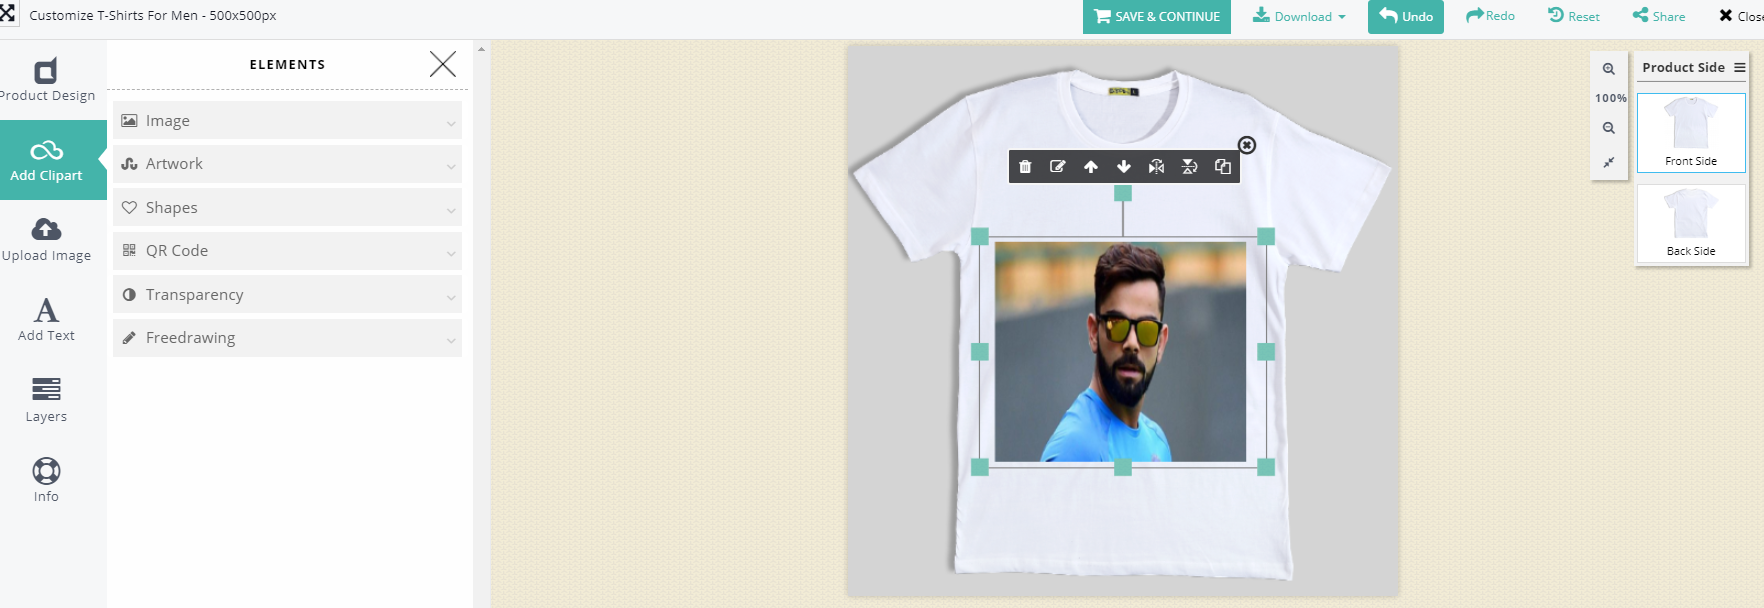 Where Can I Get Printed Customized T Shirts In India Quora